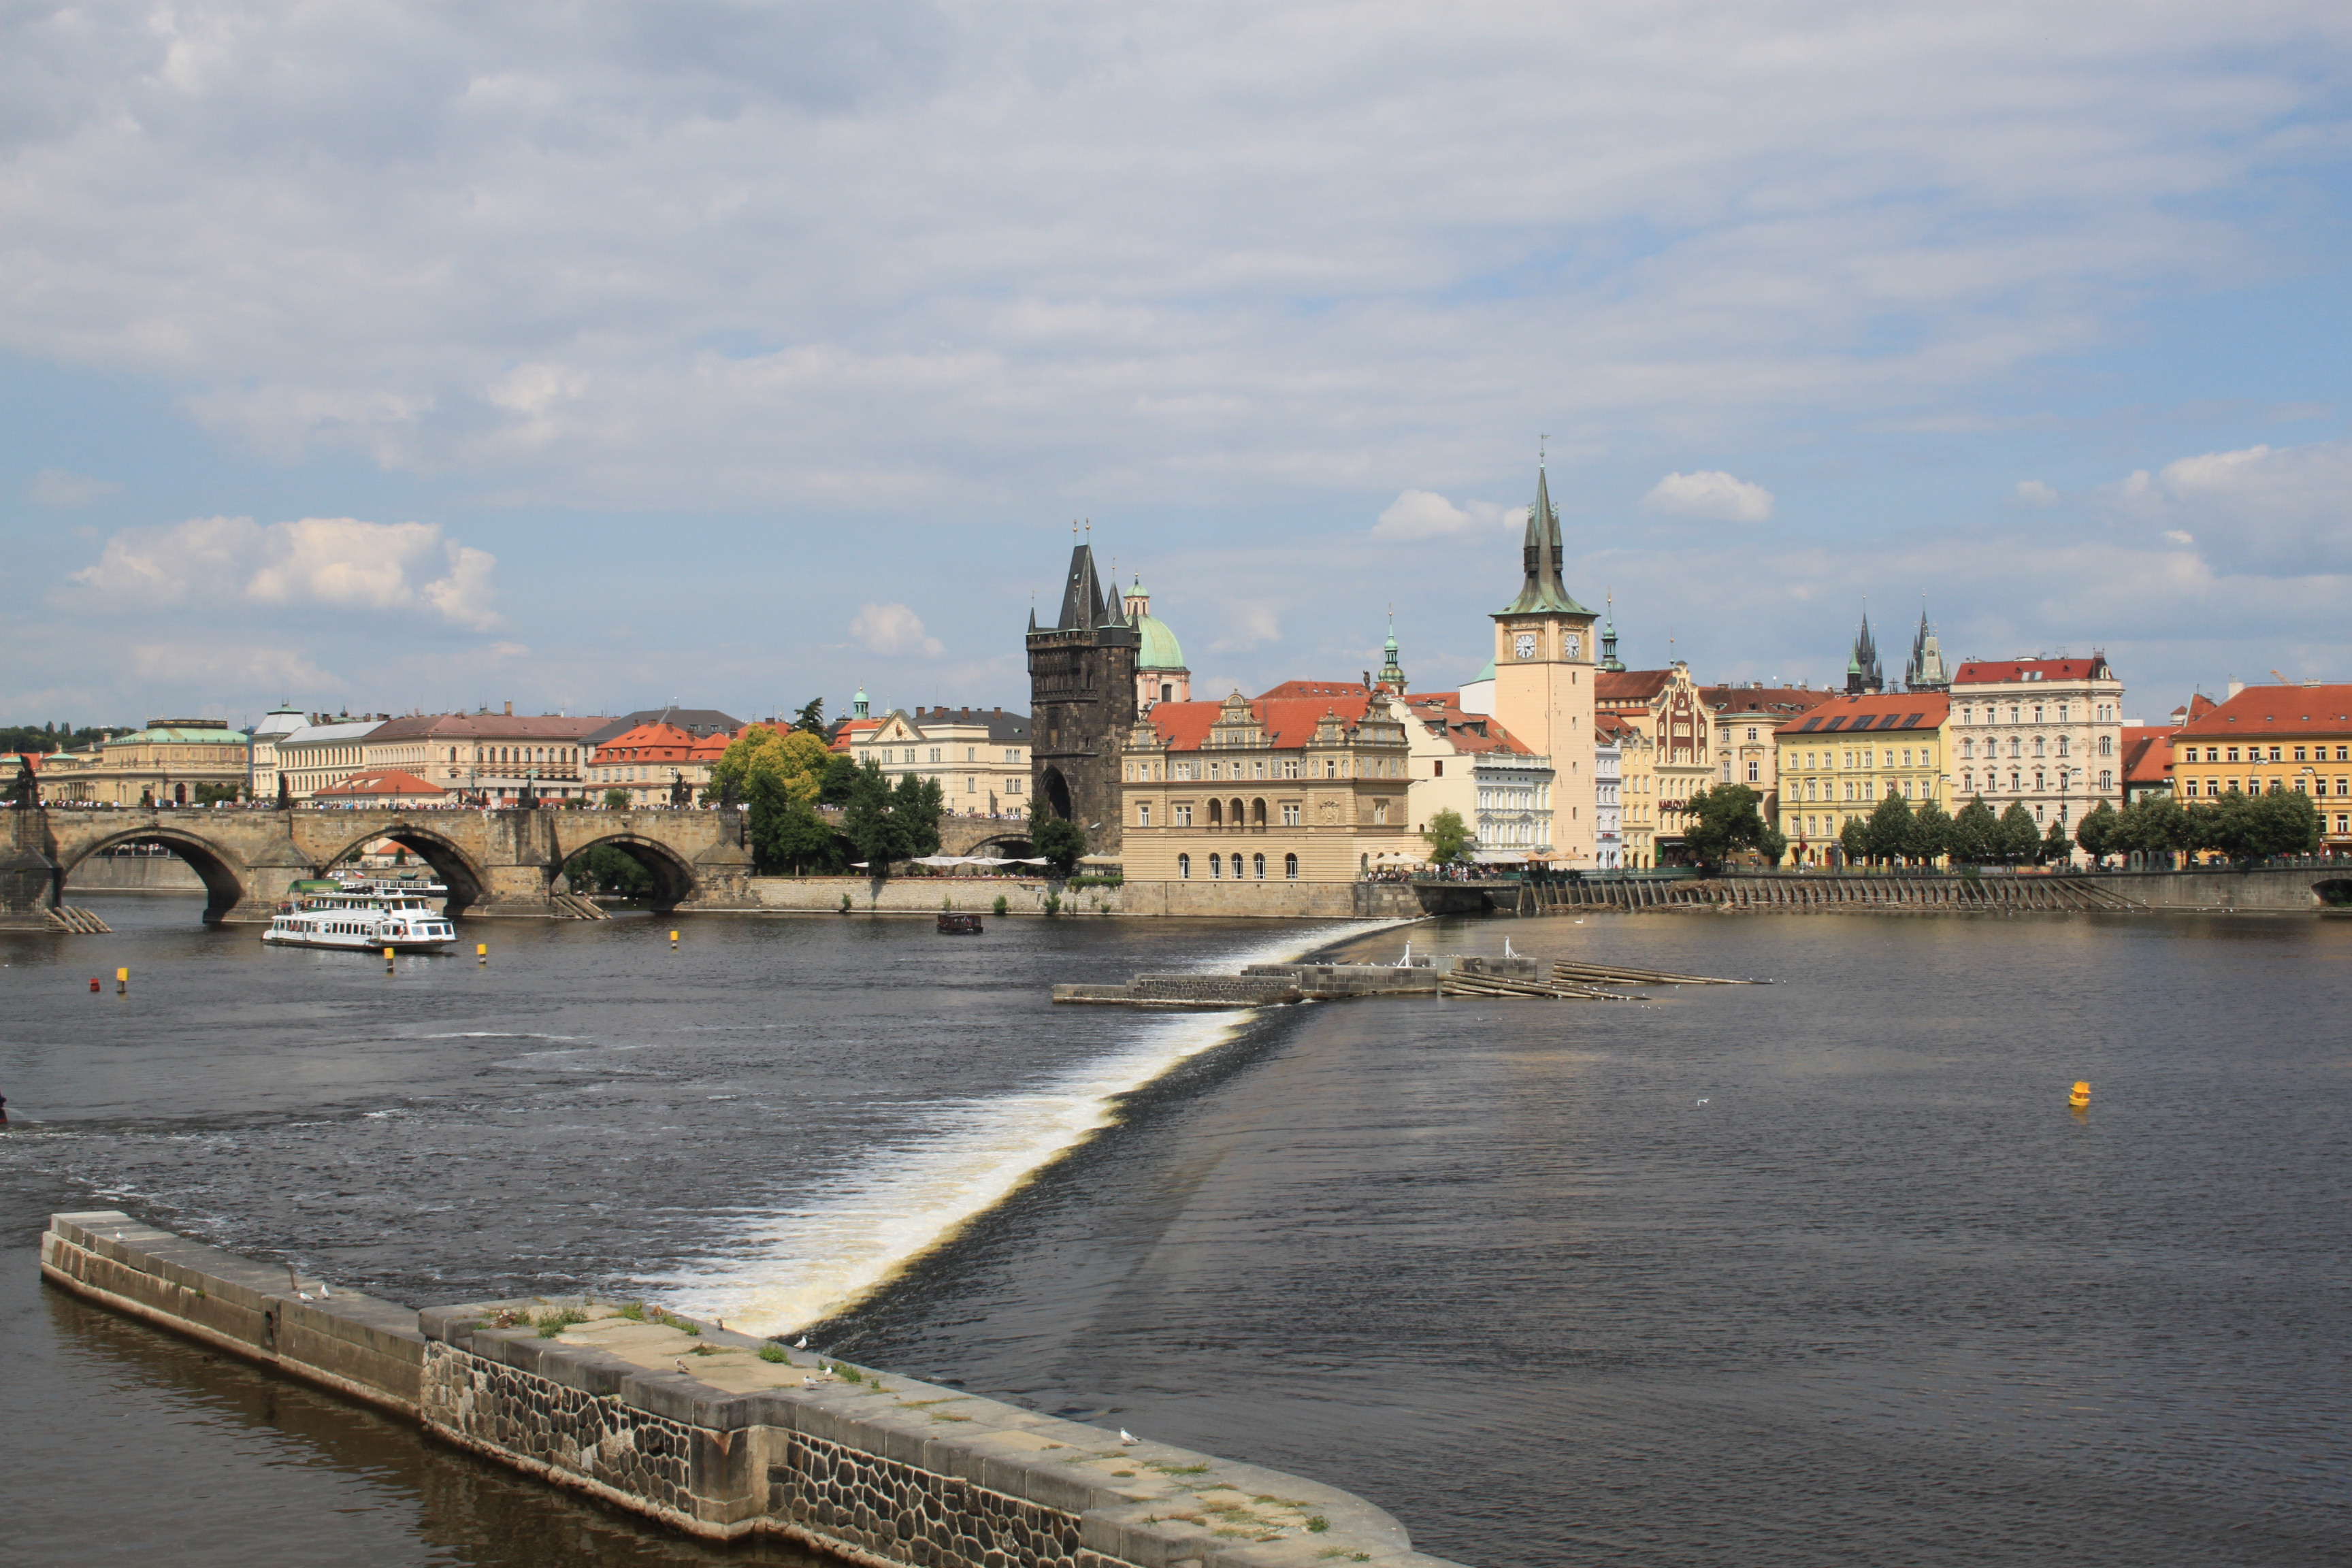 View of Prague across river with weir, Charles Bridge and landmark buildings